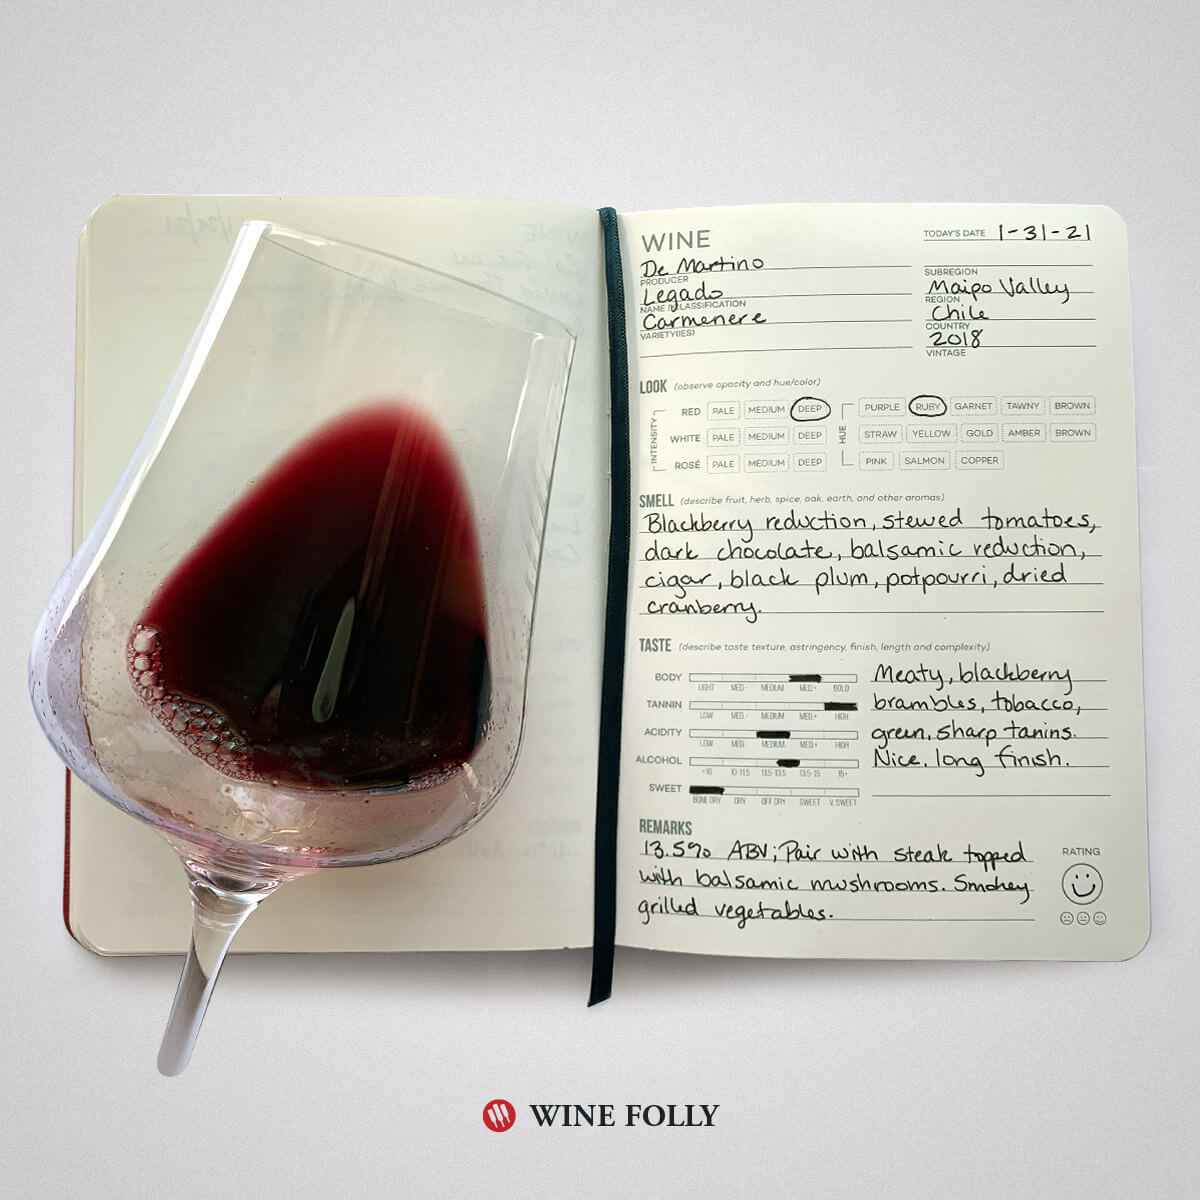 carmenere-wine-tasting-notes-journal